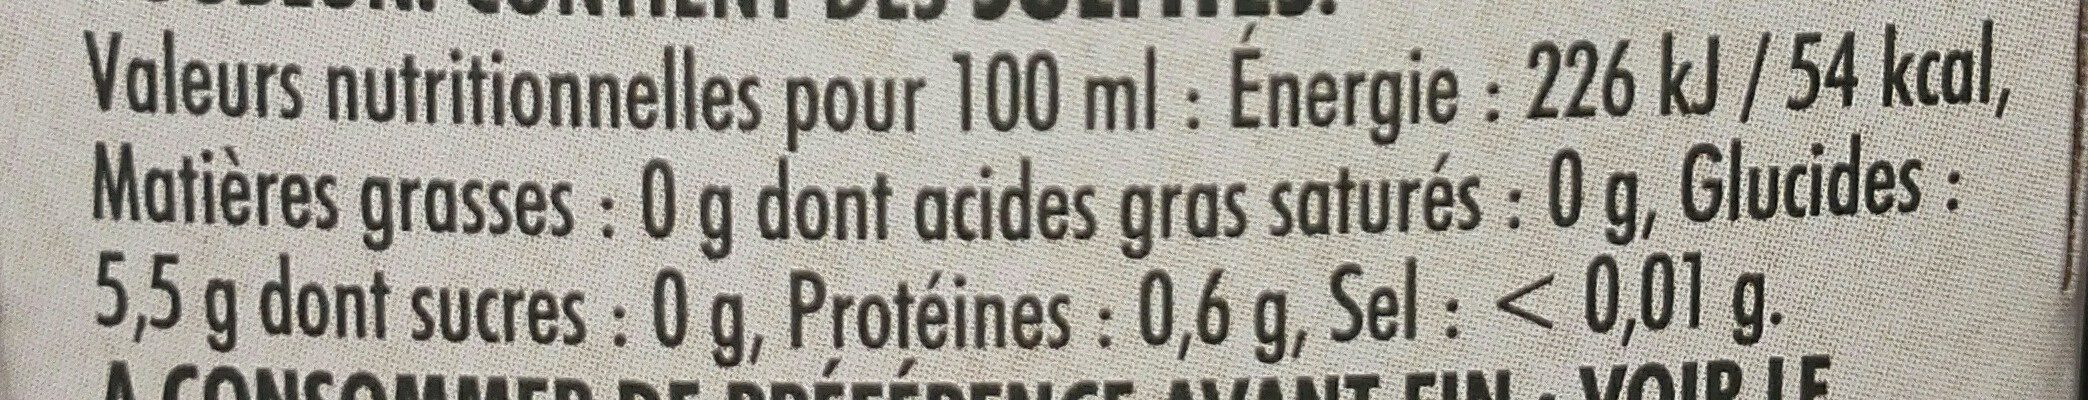 Biere - Nutrition facts